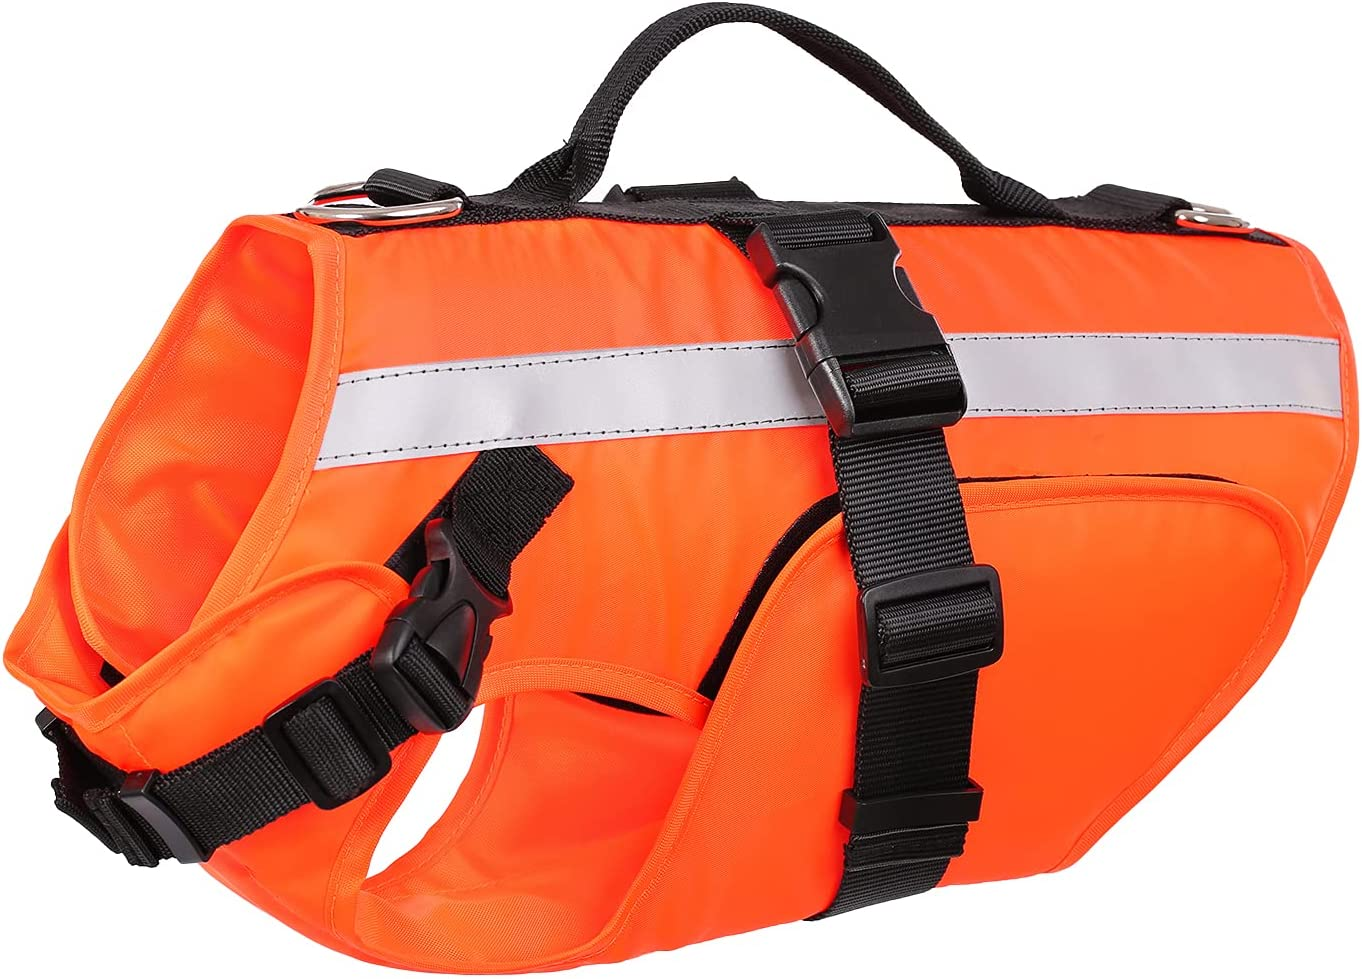 Phyxin Dog Life Popular shop is the lowest price In stock challenge Jacket High Vest Buoyancy Rescue with Pet